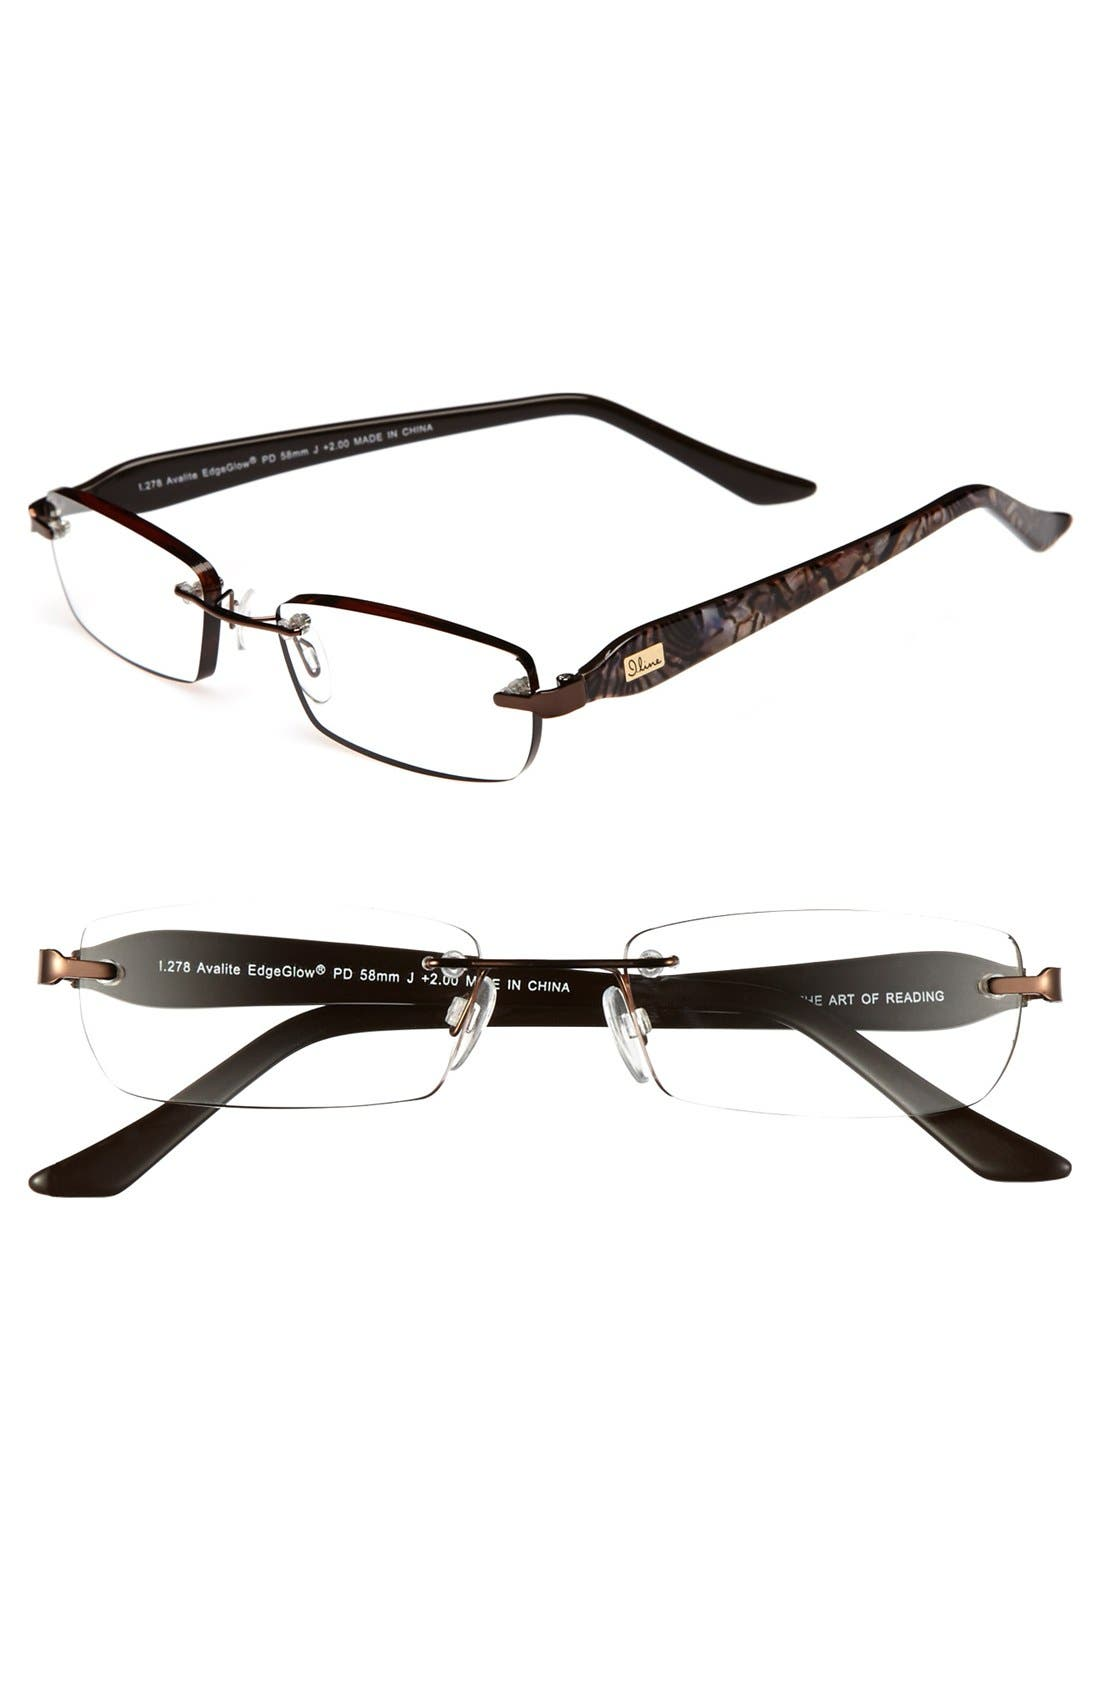 Main Image - I Line Eyewear 'Avalite' EdgeGlow® 52mm Reading Glasses (2 for $88)